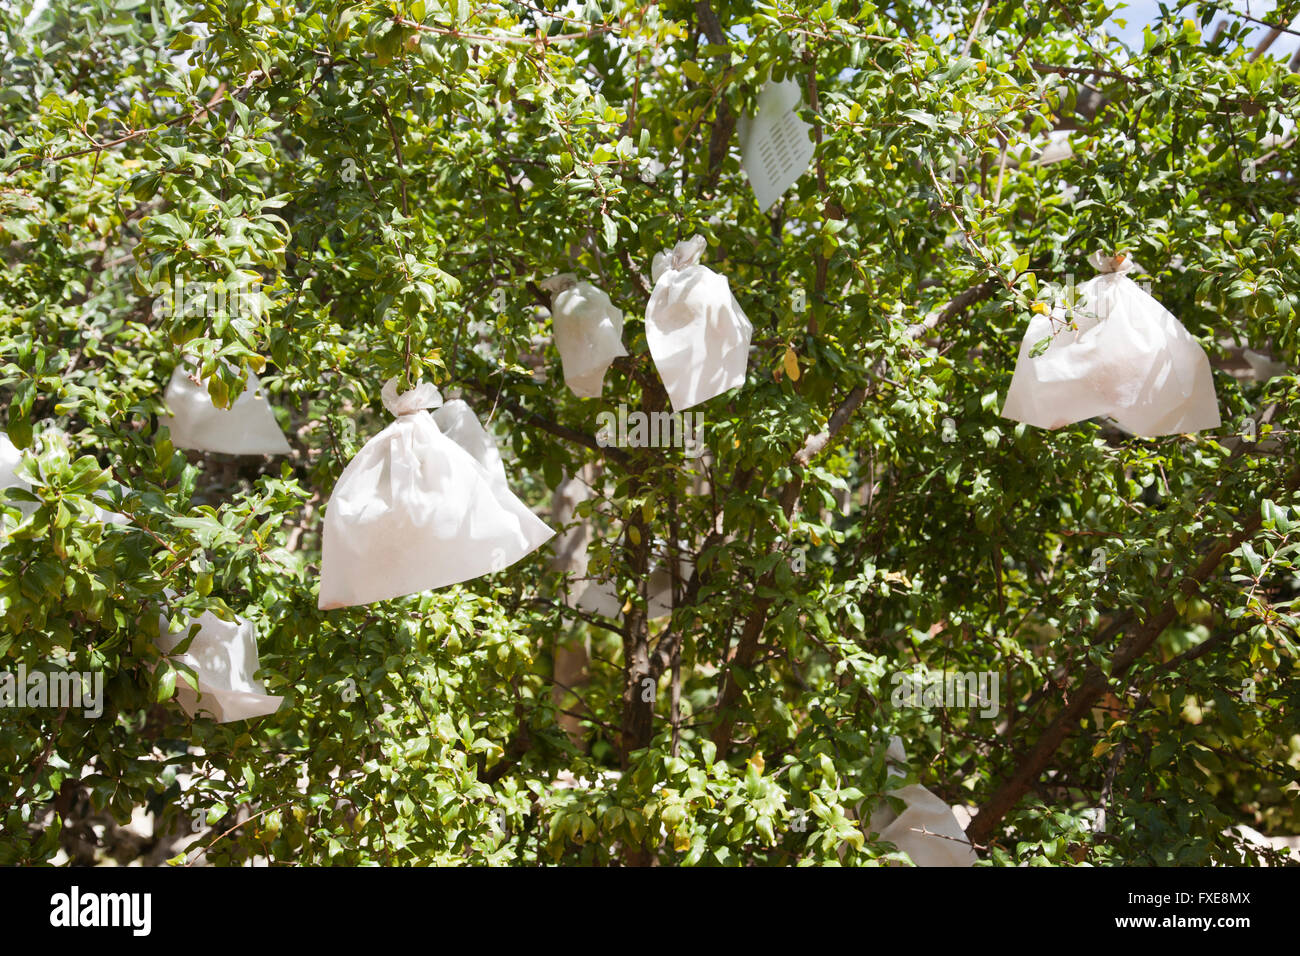 White Plastic Bags on Tree for Protection - Stock Image